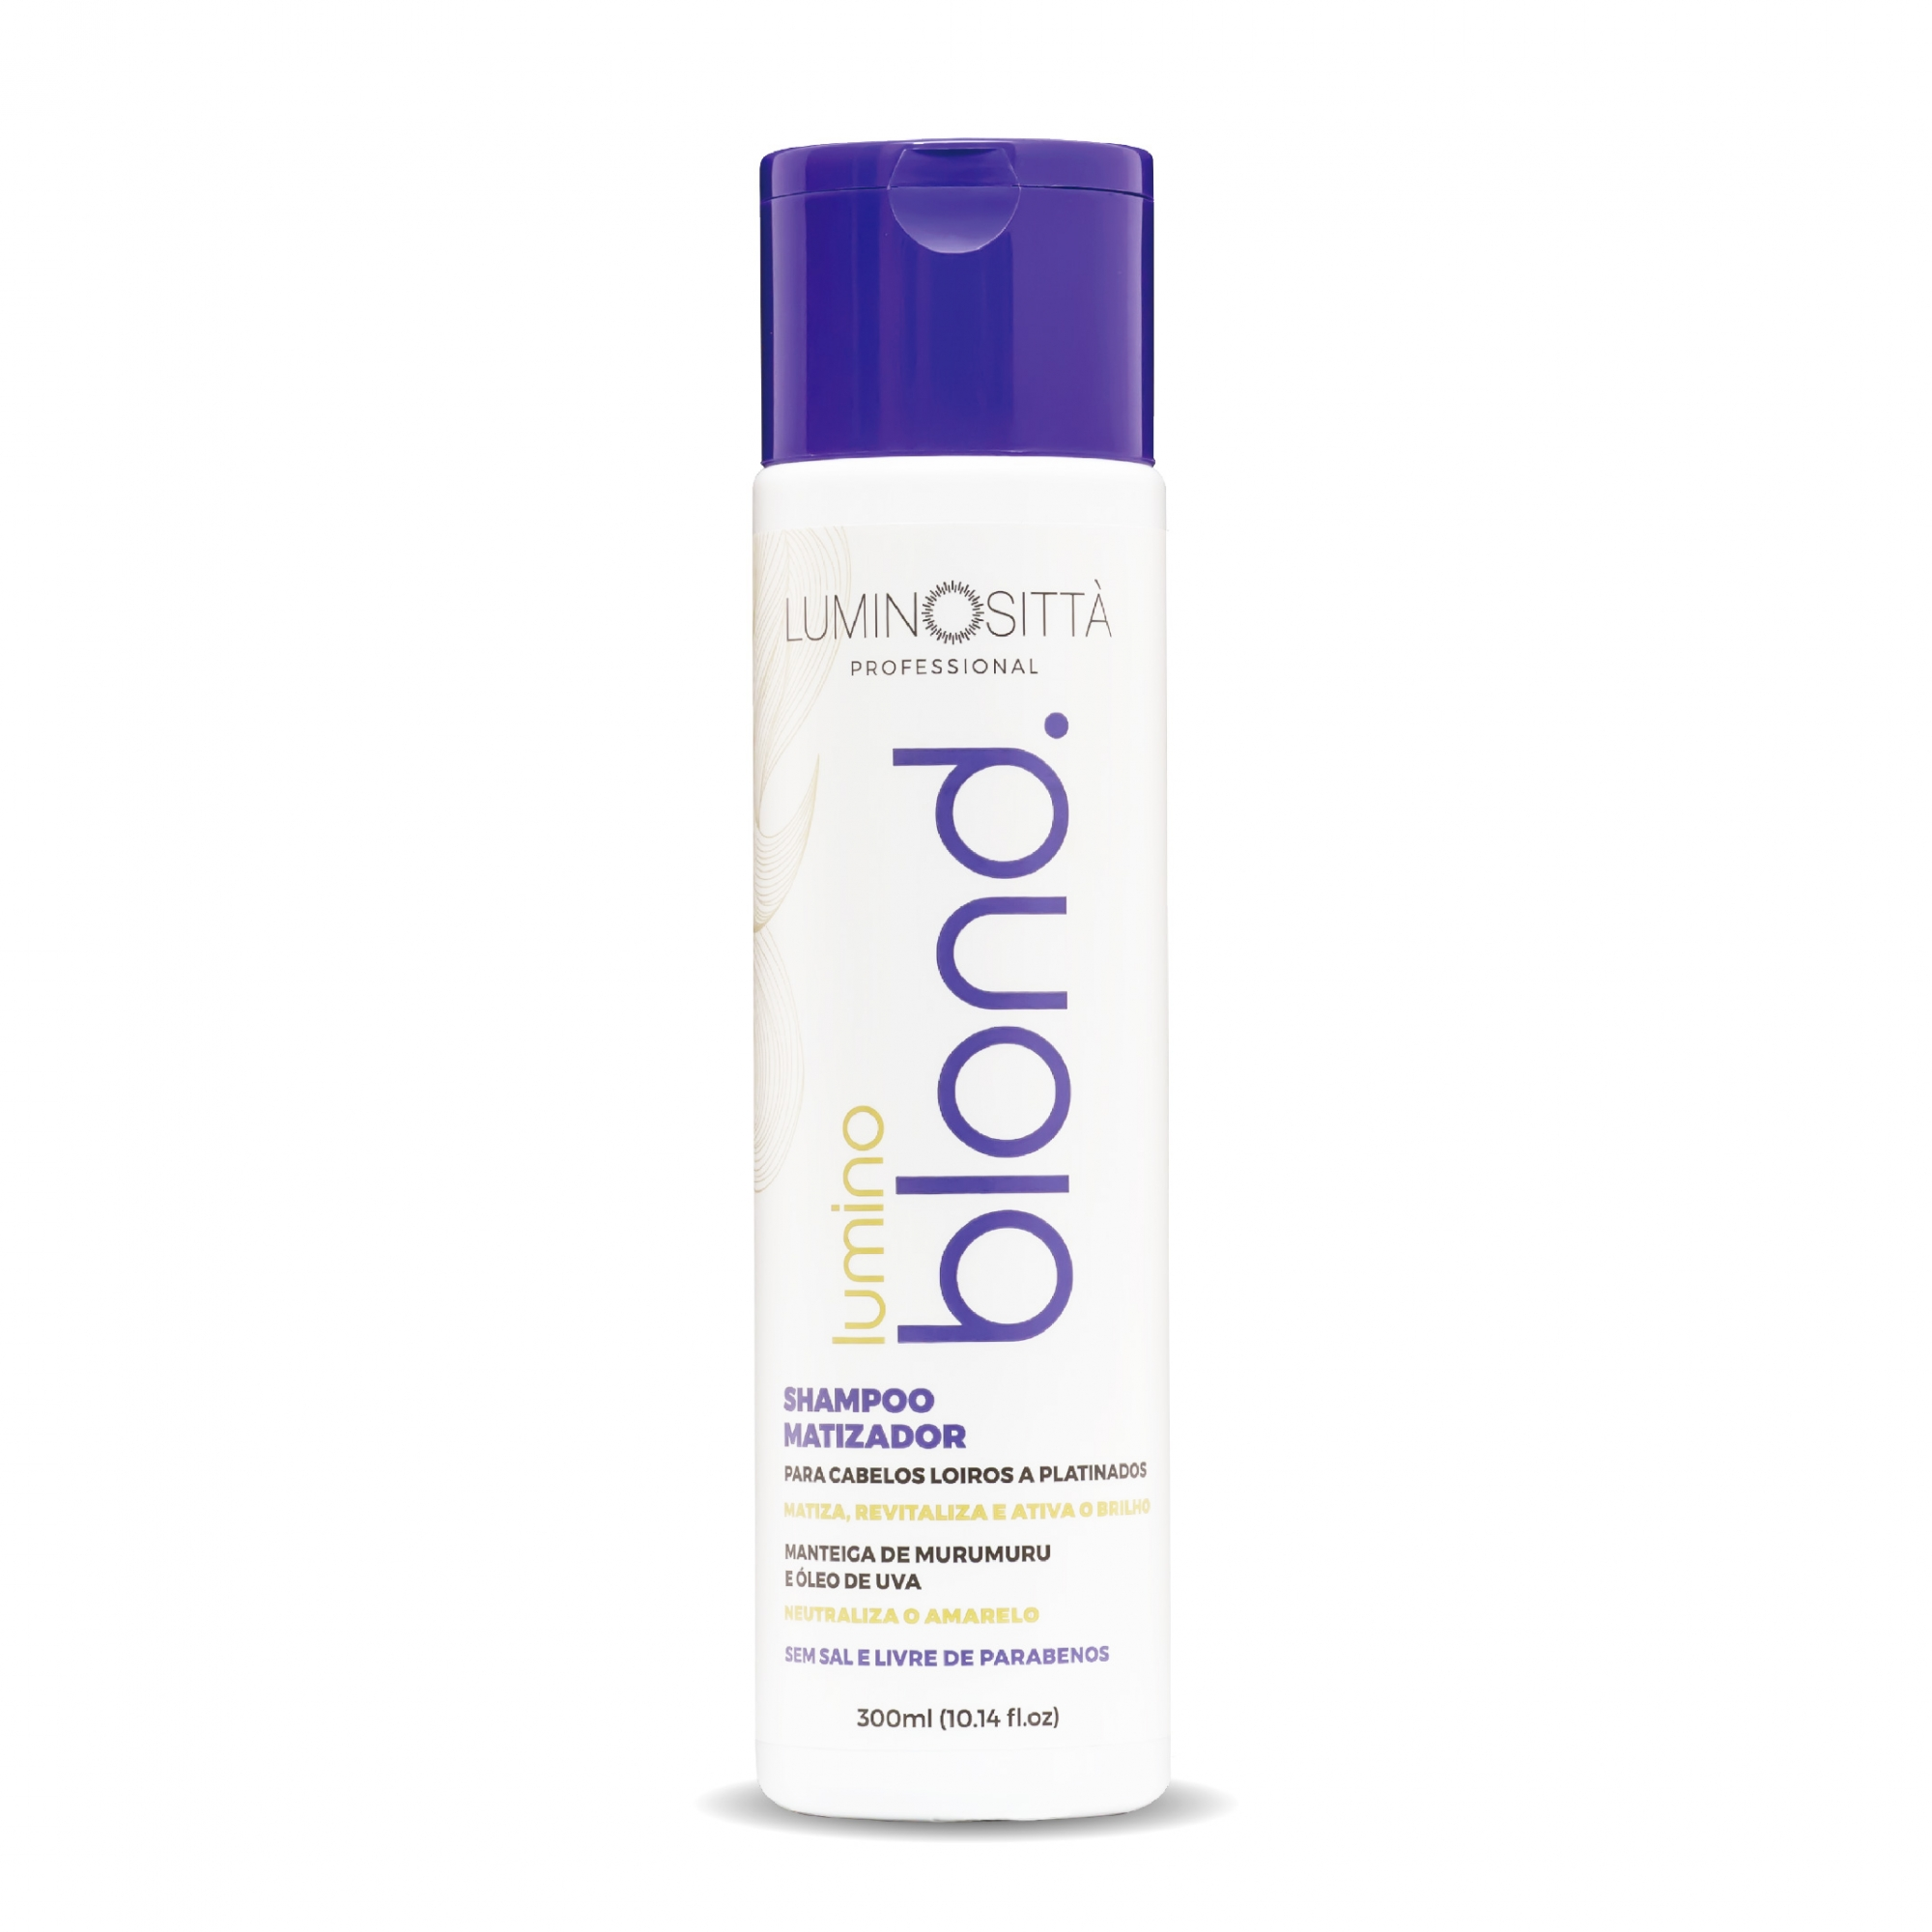 Shampoo Blond - 300ml Luminositta